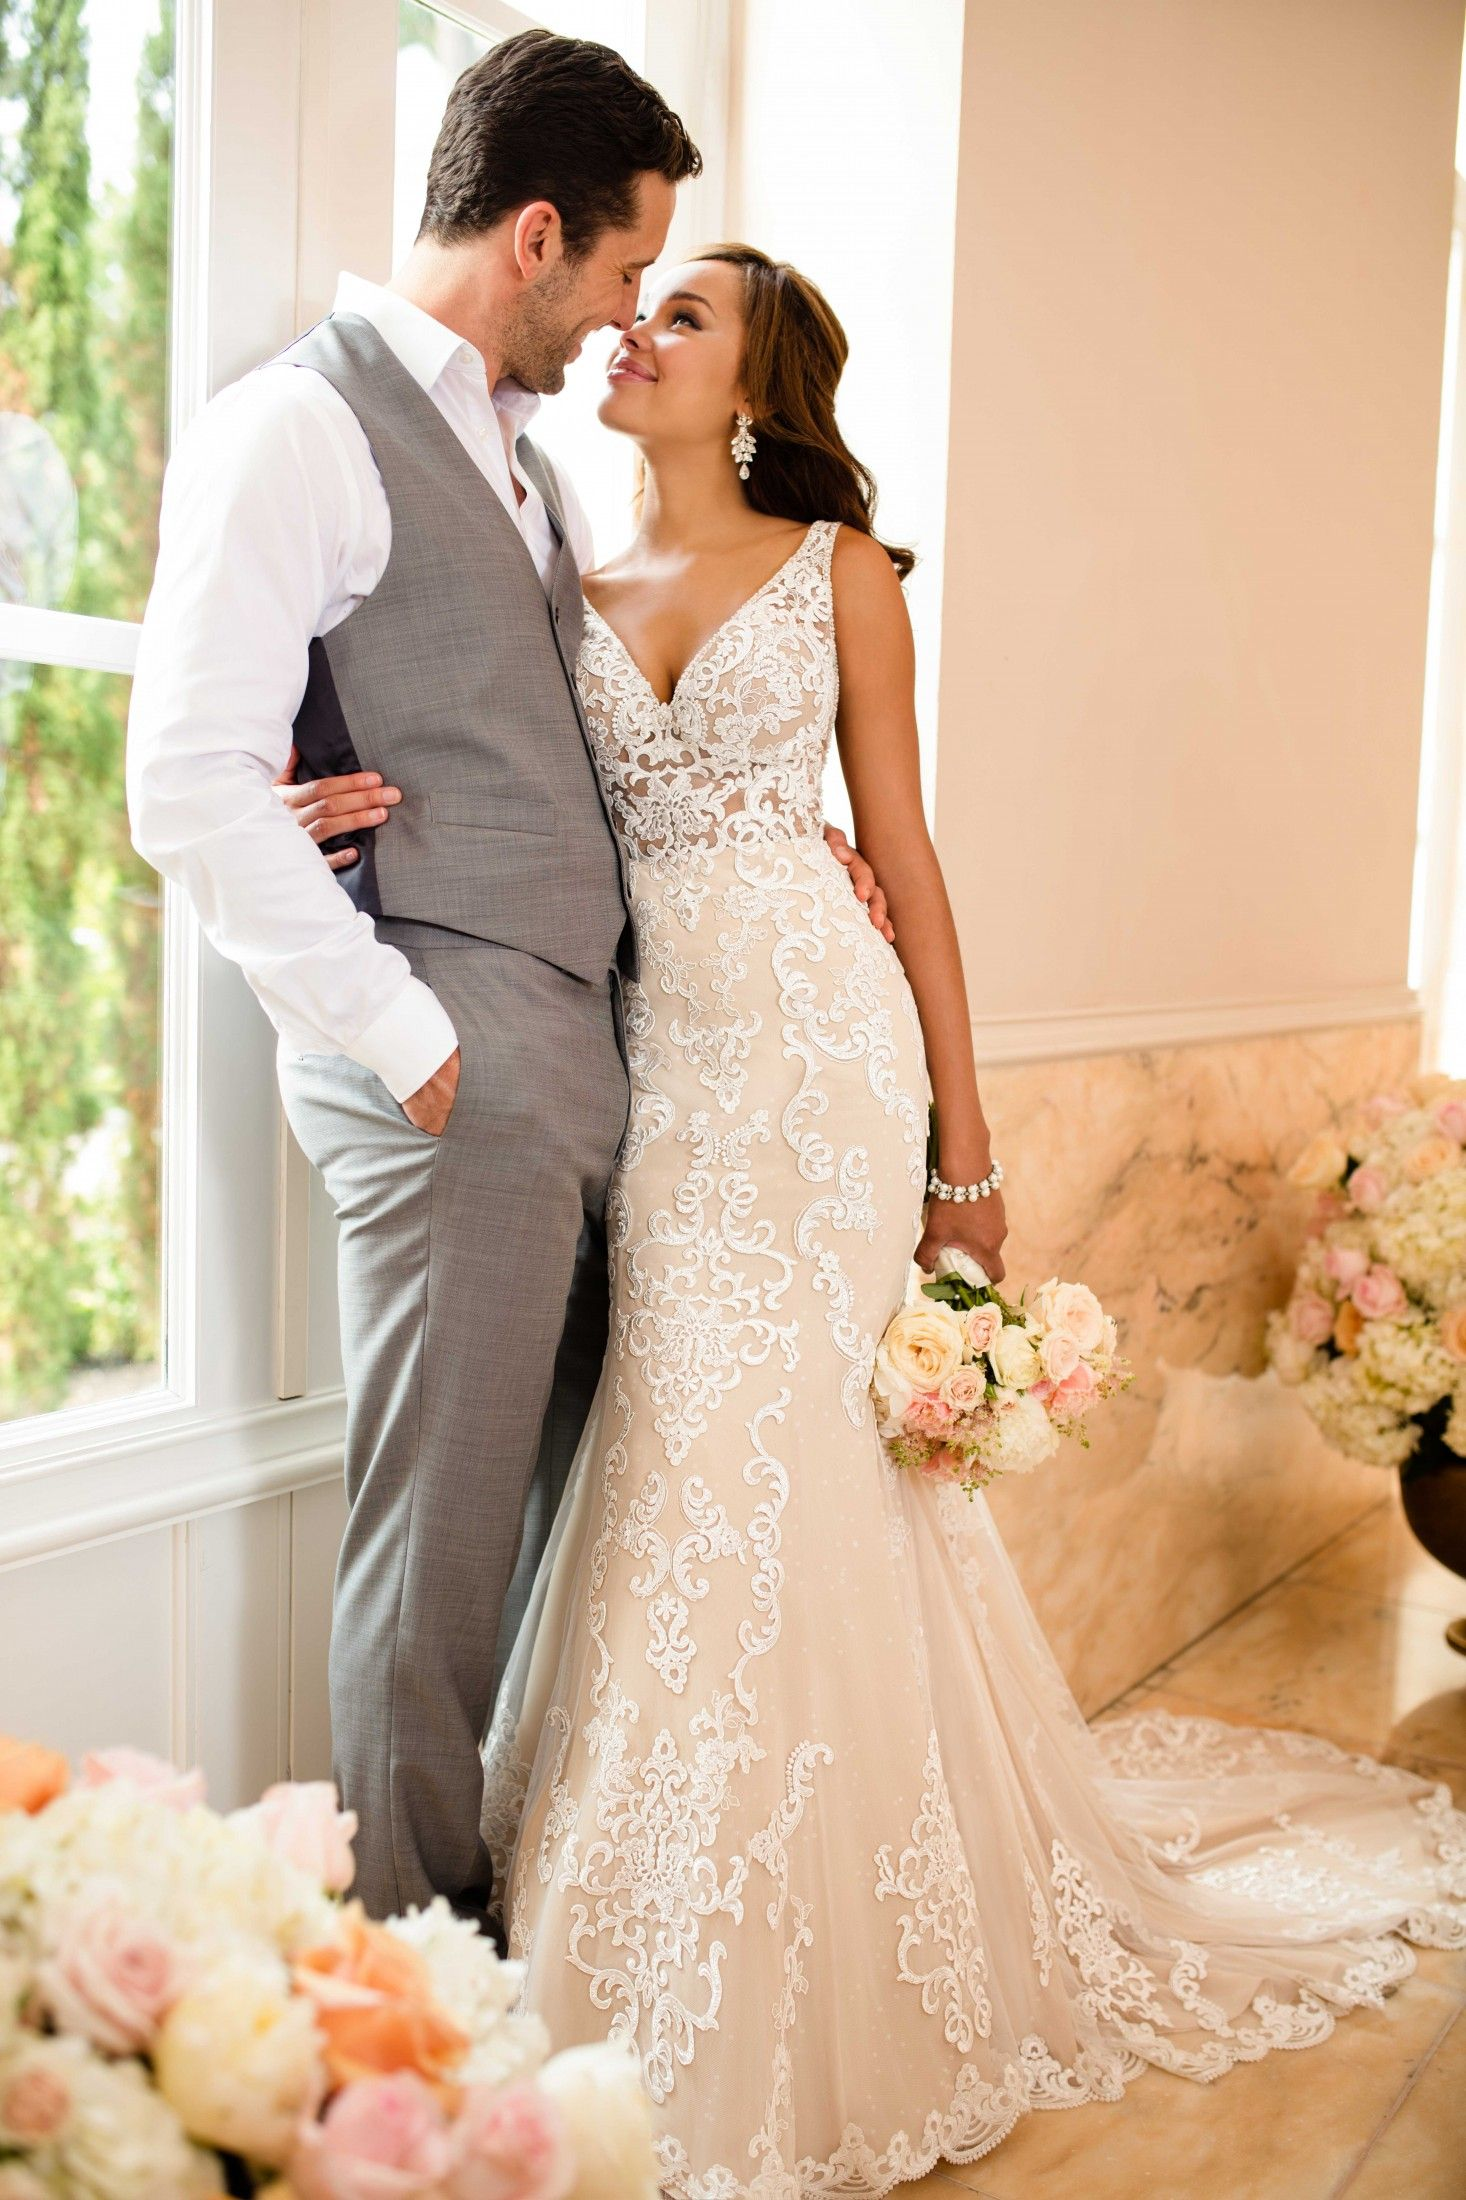 ad] Looking for wedding inspiration? Love lace dresses? Find the ...